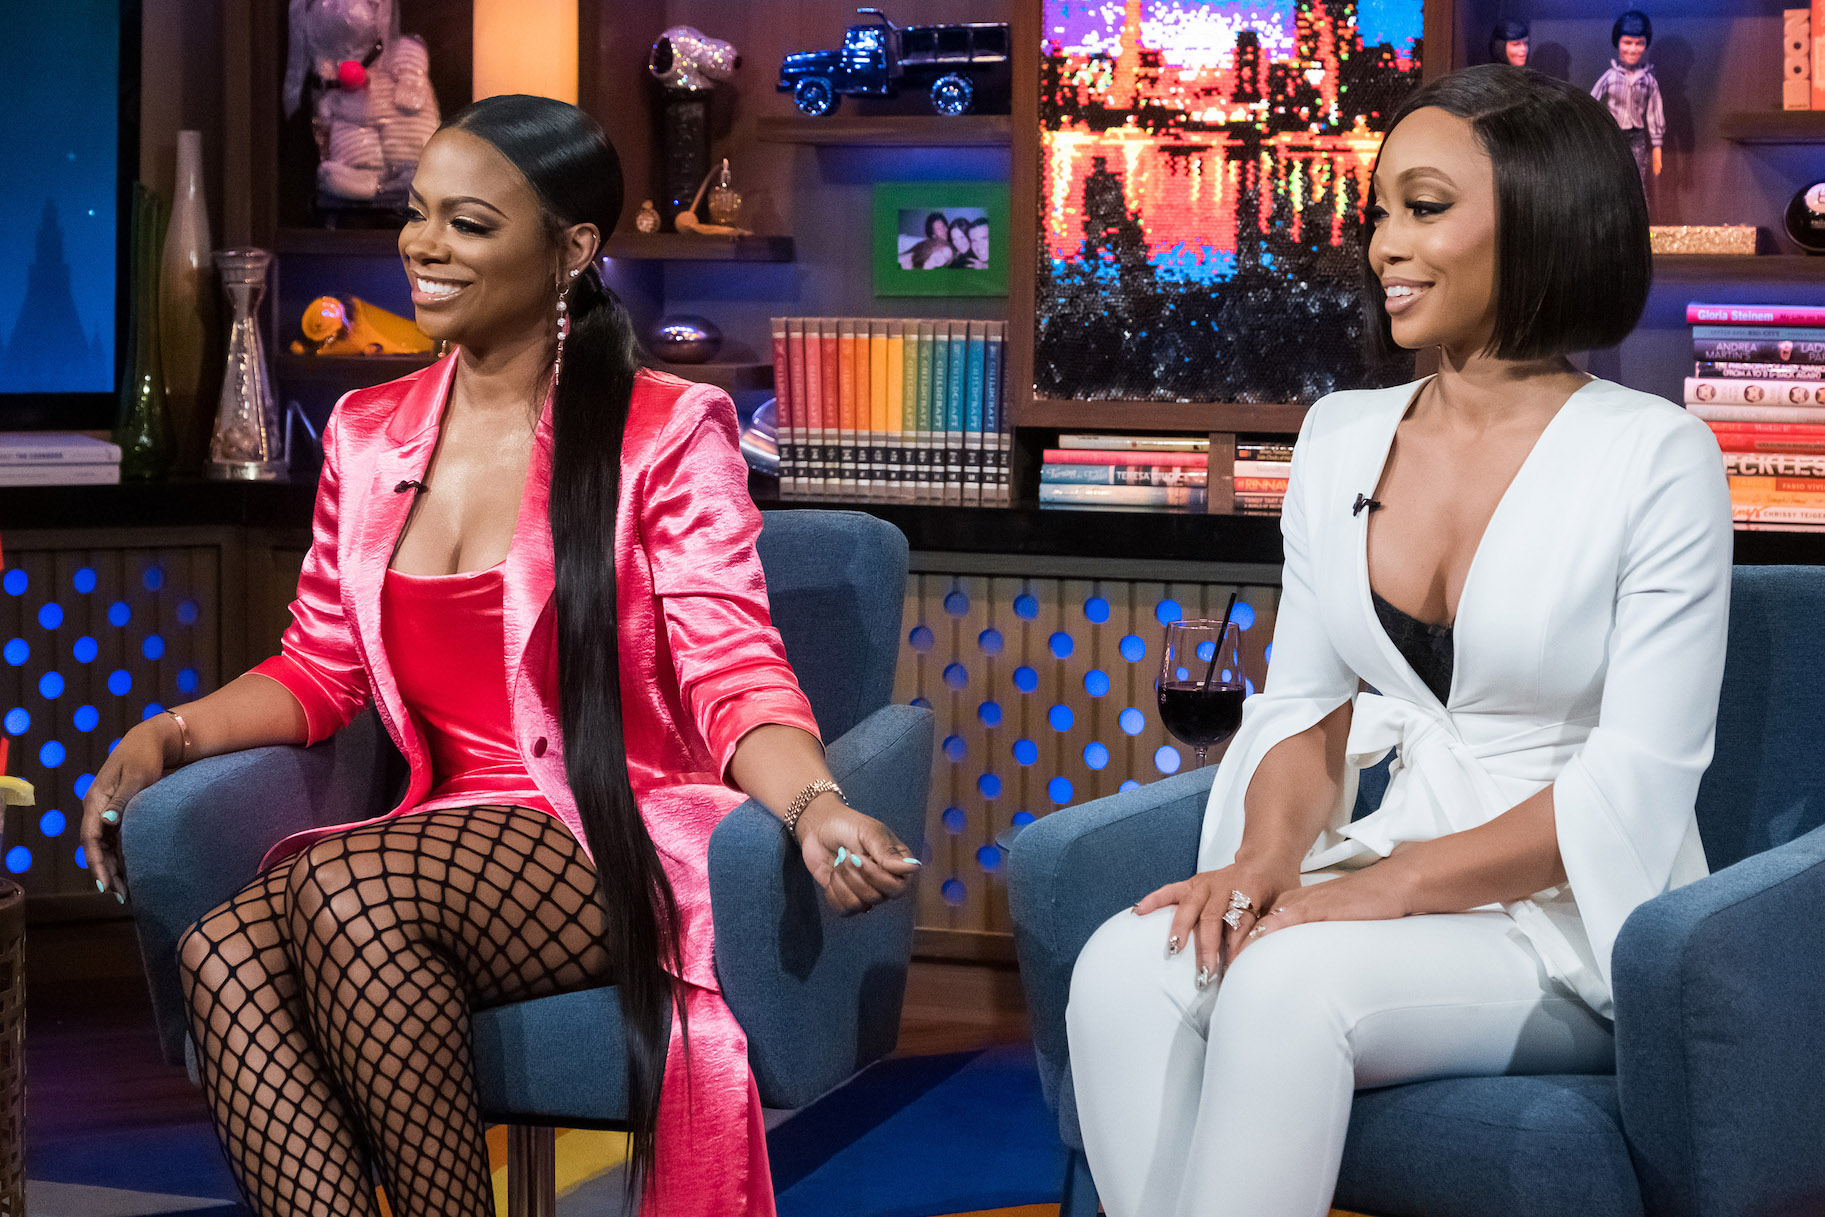 kandi-burruss-and-shamari-devoe-are-giving-fans-blaque-xscape-vibes-and-they-are-here-for-it